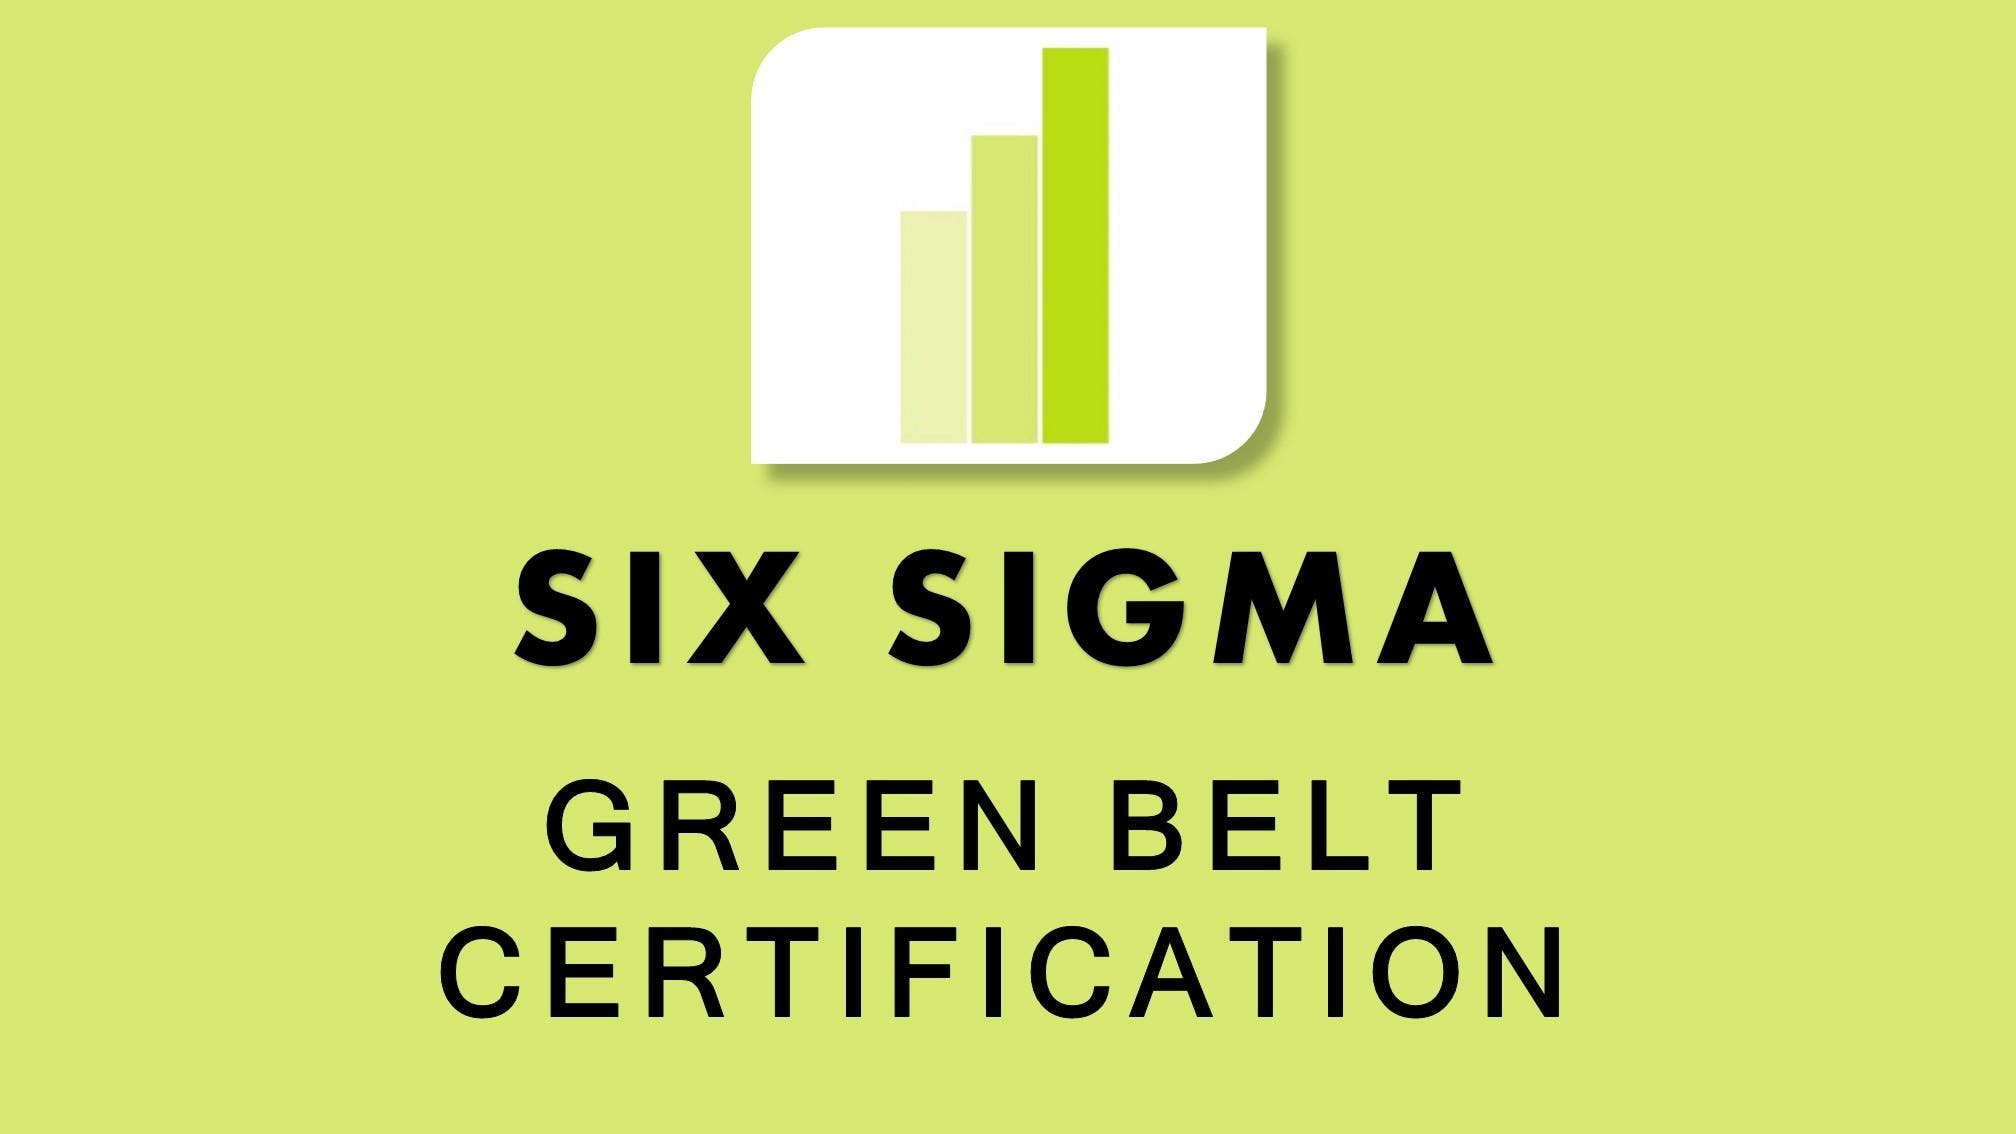 Six Sigma Tool Kit Events In The City Top Upcoming Events For Six